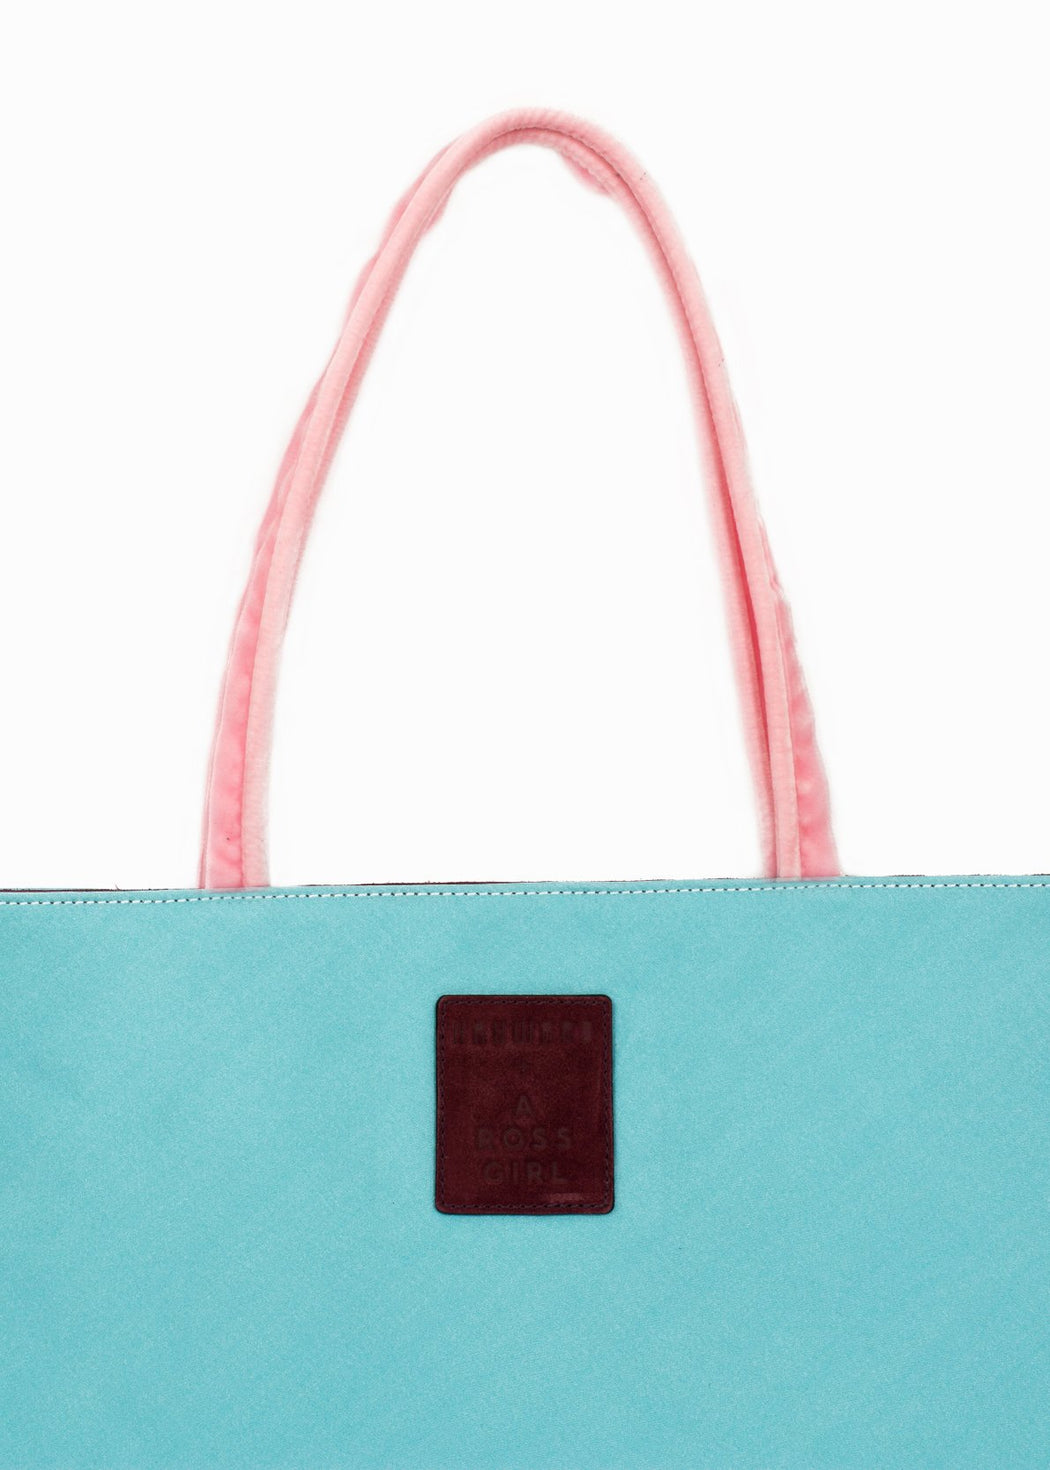 Hayward x ARossGirl Gloria Bag in Turquoise Satin